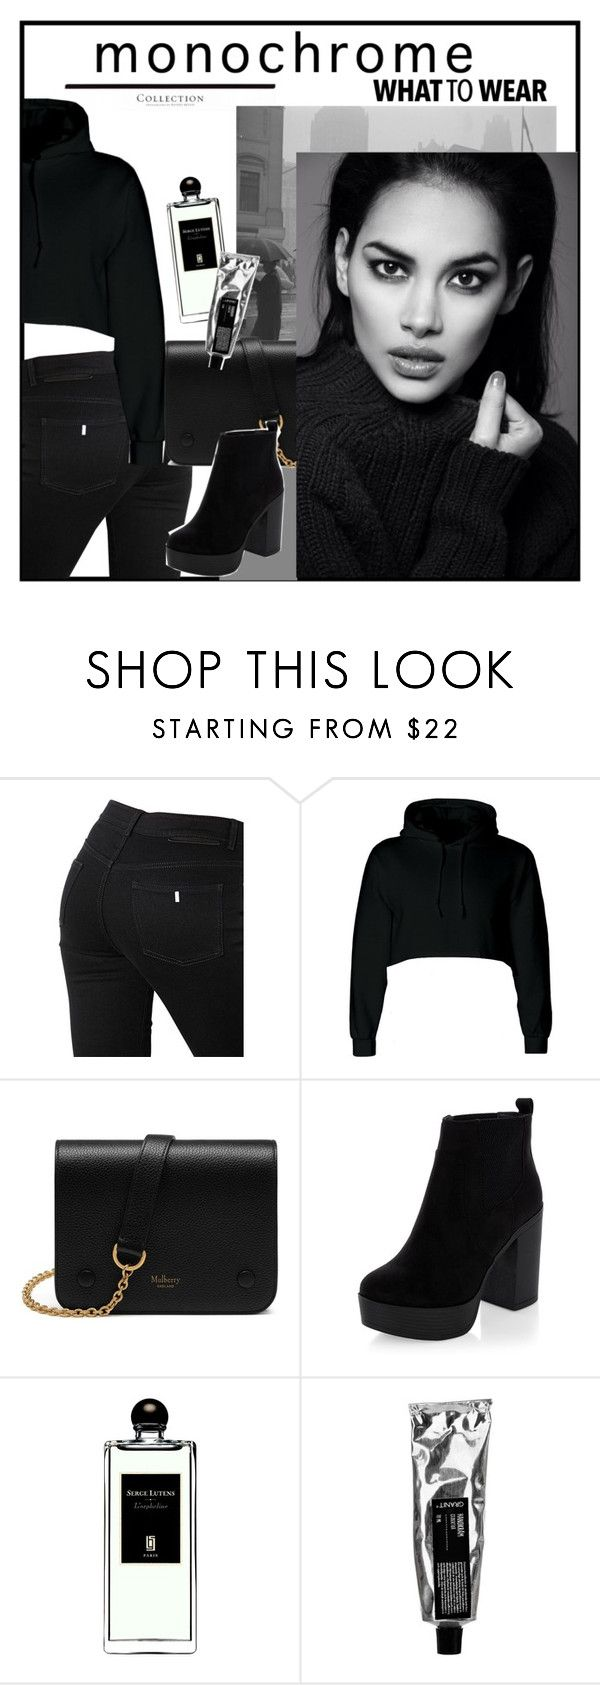 """Untitled #358"" by noonemore ❤ liked on Polyvore featuring STELLA McCARTNEY, Mulberry, New Look, Serge Lutens and monochrome"